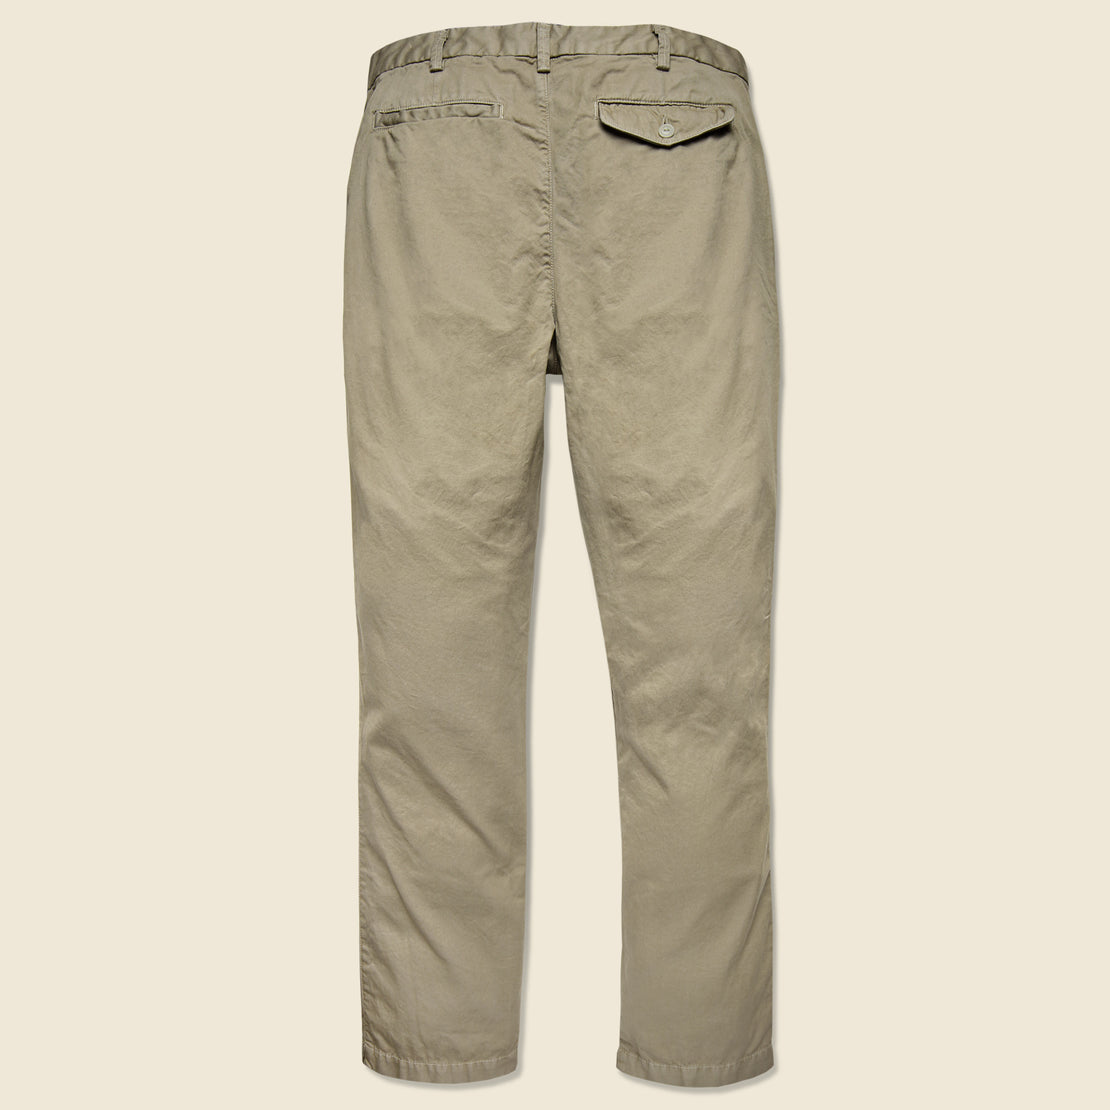 Light Twill Trouser - Khaki